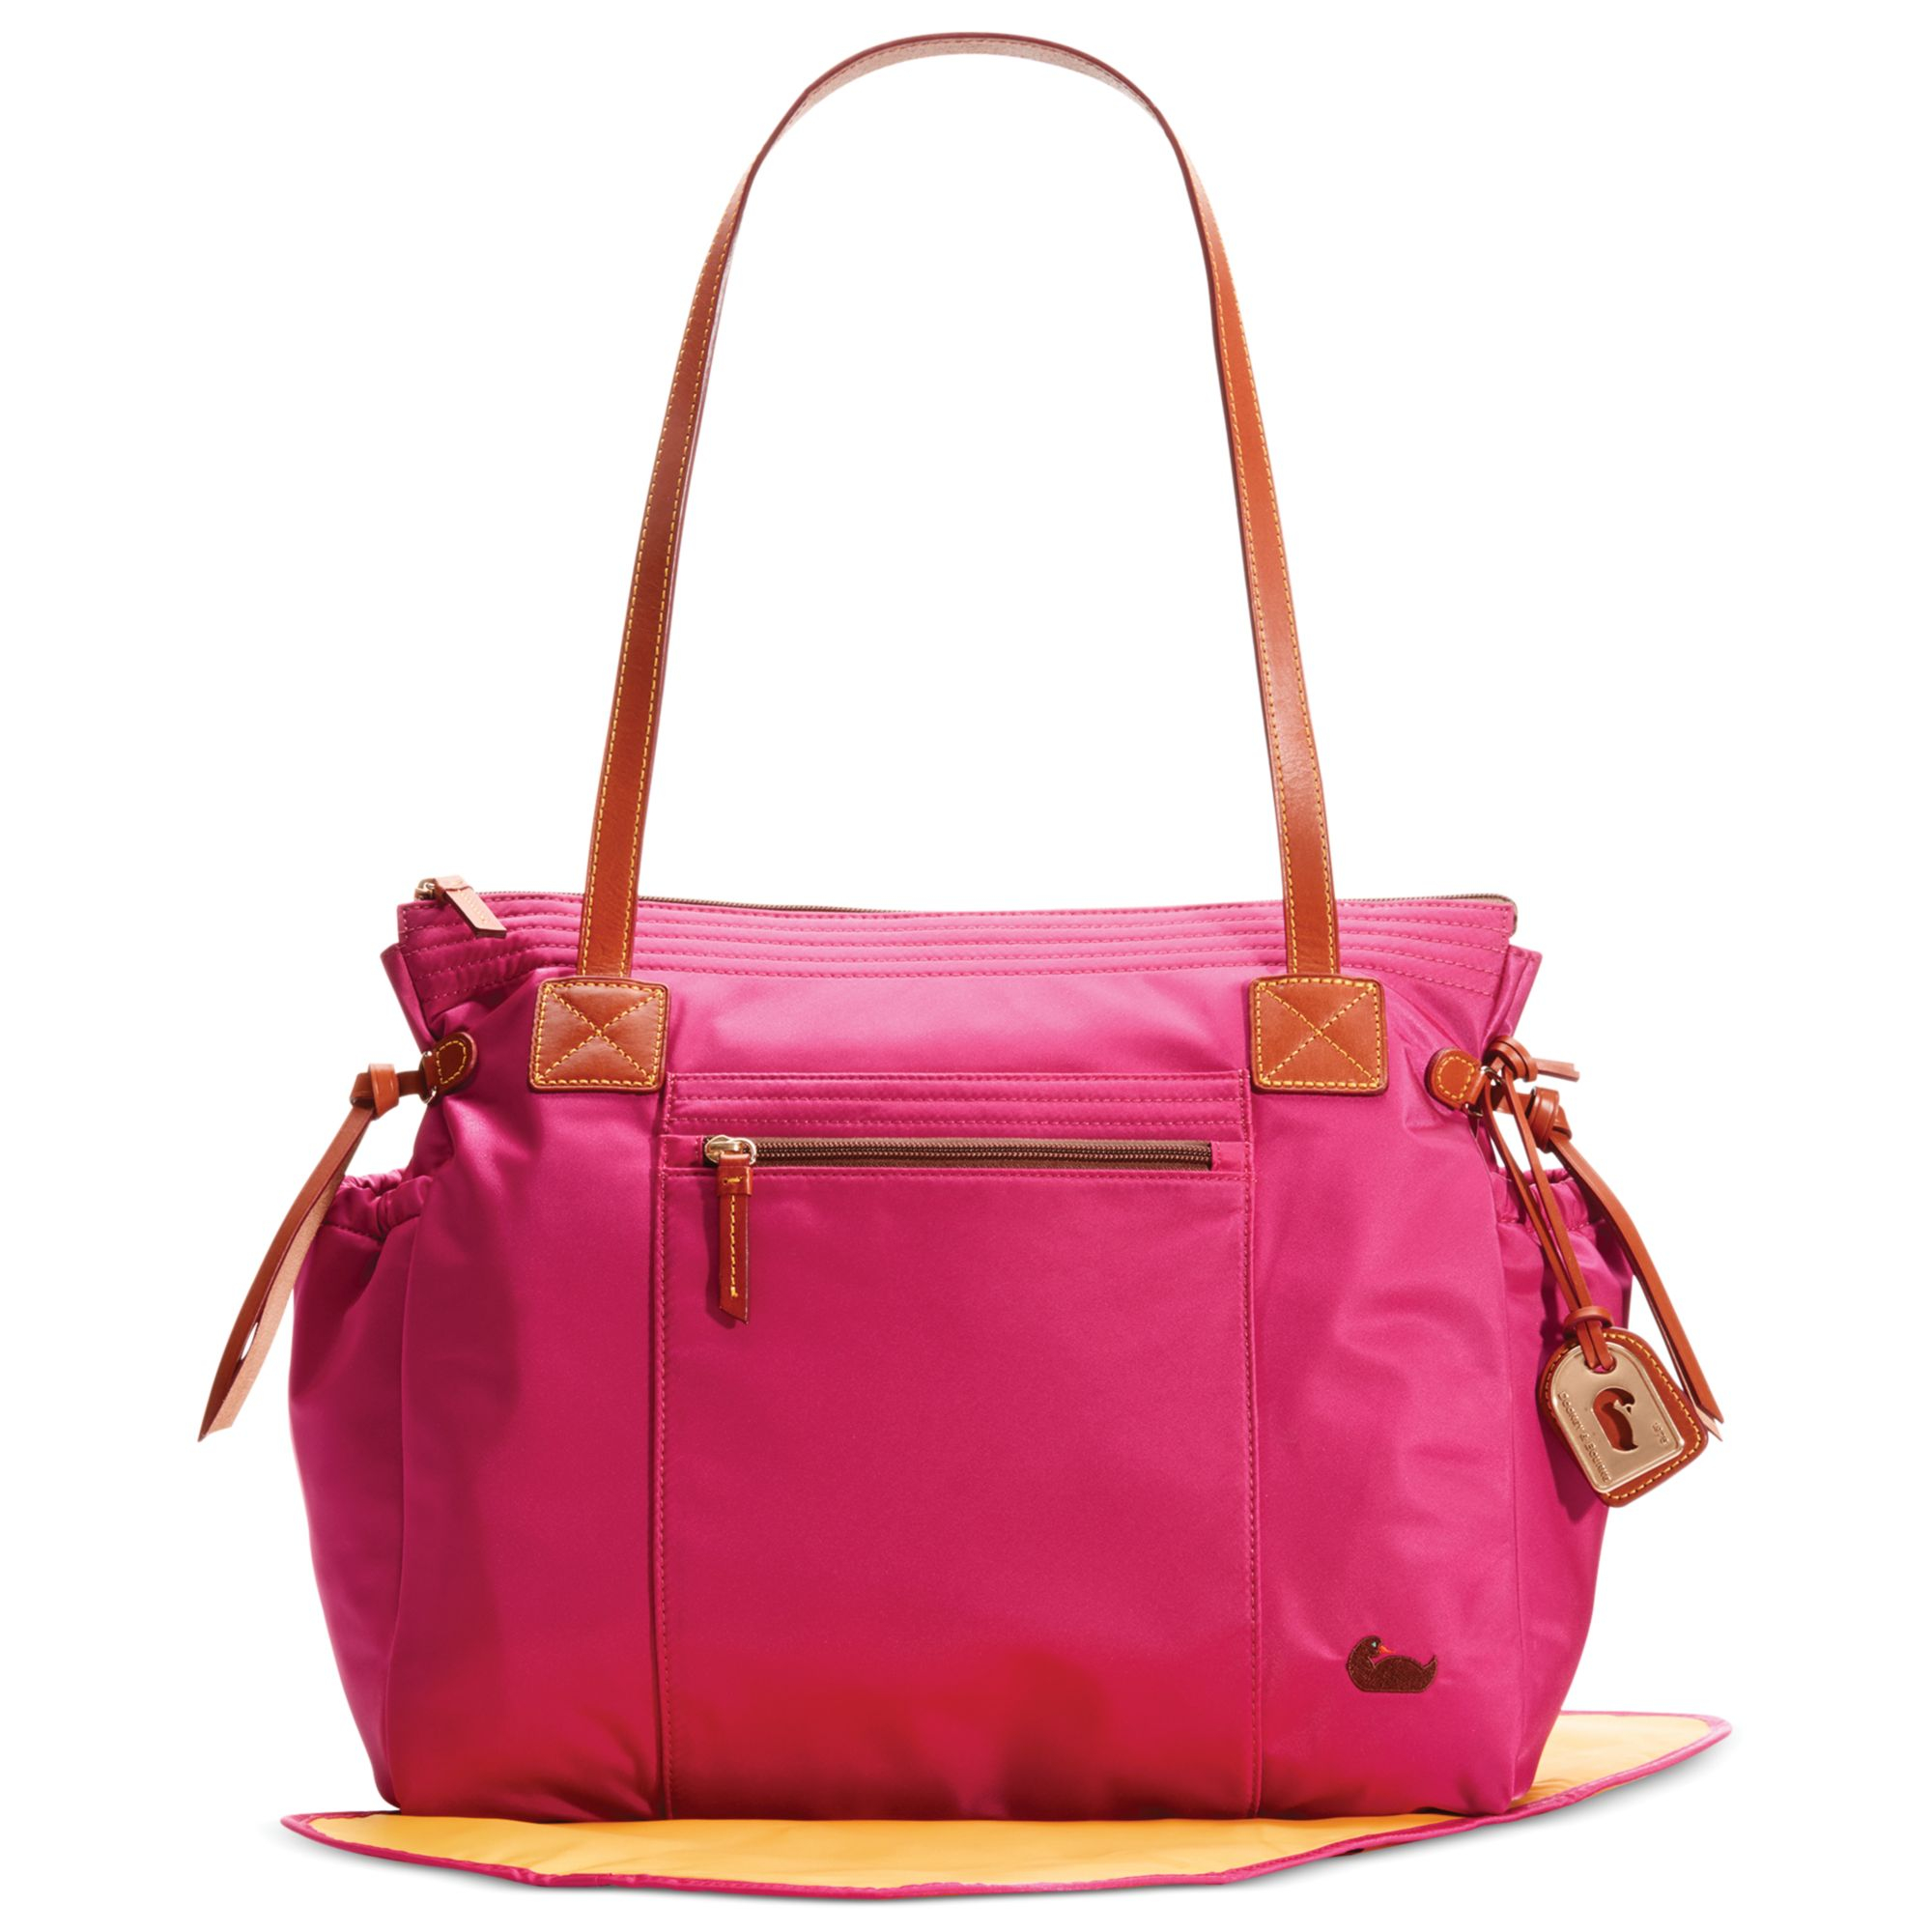 dooney bourke nylon diaper bag in pink lyst. Black Bedroom Furniture Sets. Home Design Ideas